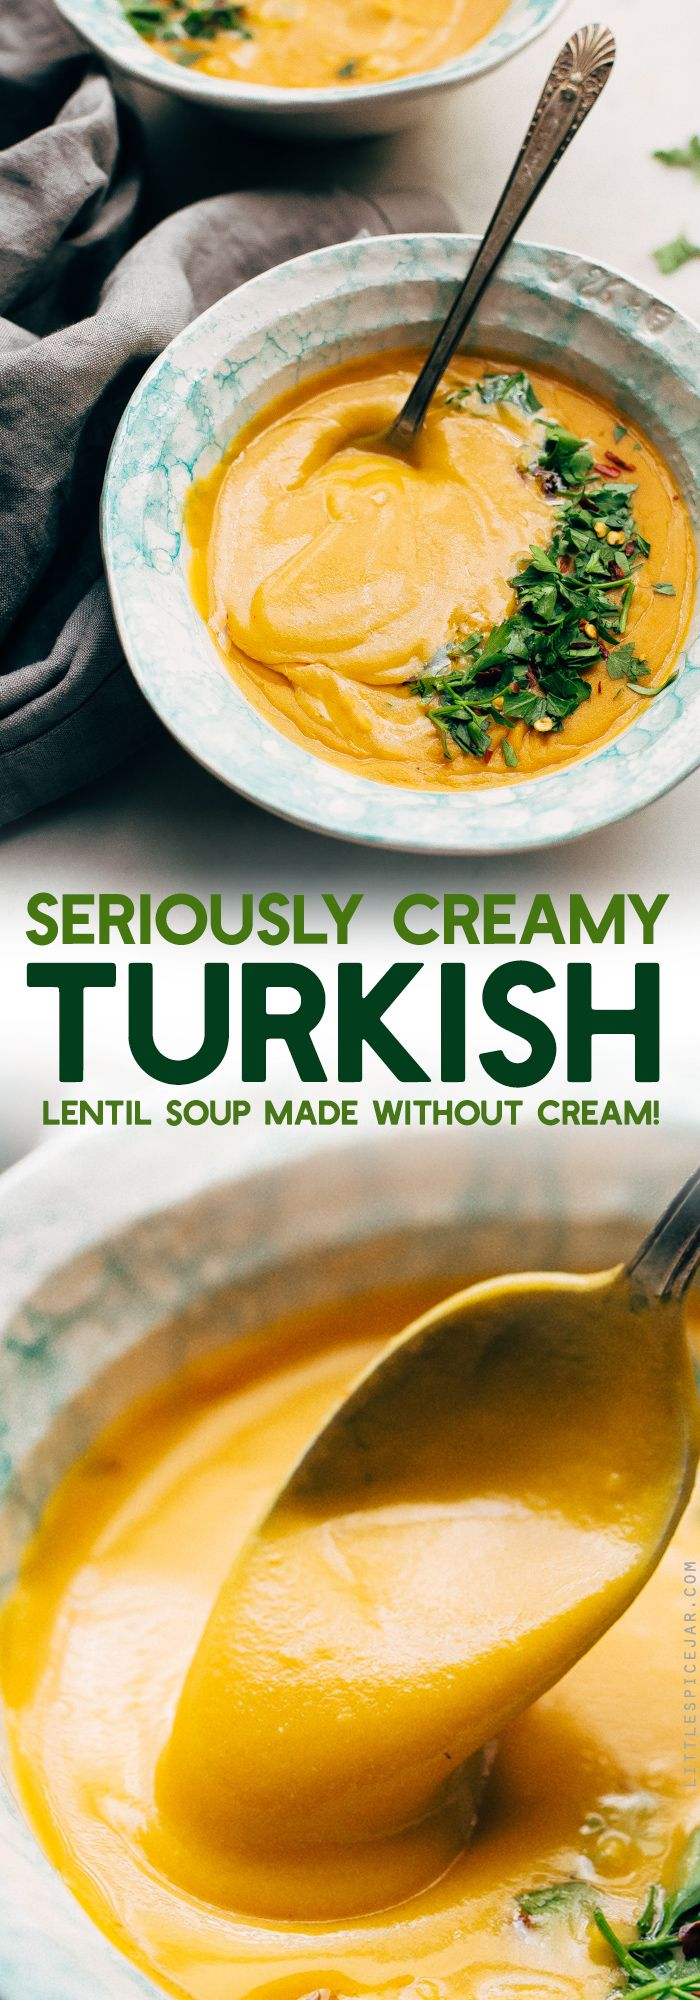 Luxurious Turkish Lentil Soup - 30 minutes to make this creamy soup that contains NO CREAM! Completely vegetarian/vegan friendly and gluten-free! #lentilsoup #splitpeasoup #instantpot #soup | Littlespicejar.com